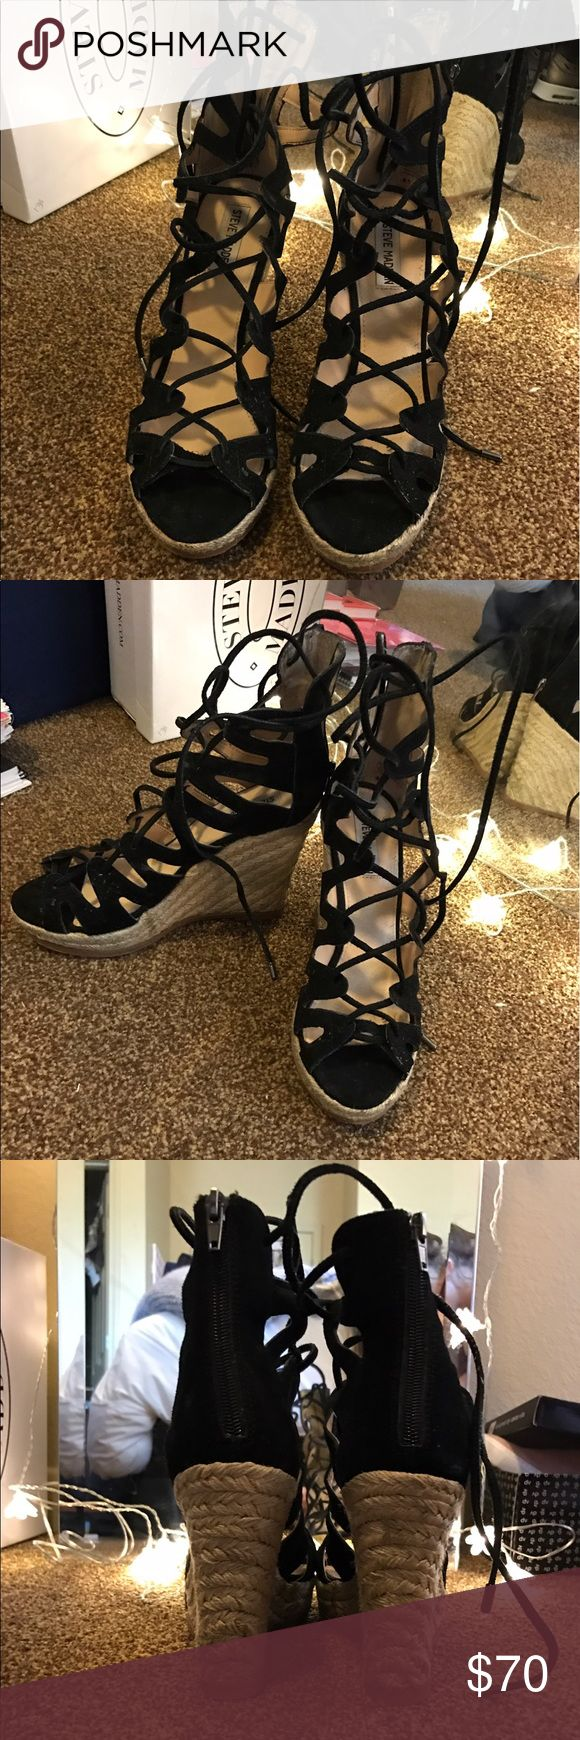 Steve Madden 'Thera' Wedges. These Steve Madden Wedges have a 4.5in heel, zipper in the back and lace up the front. Very on-trend and look great with formal dresses or a casual outfit! Worn once. Steve Madden Shoes Wedges